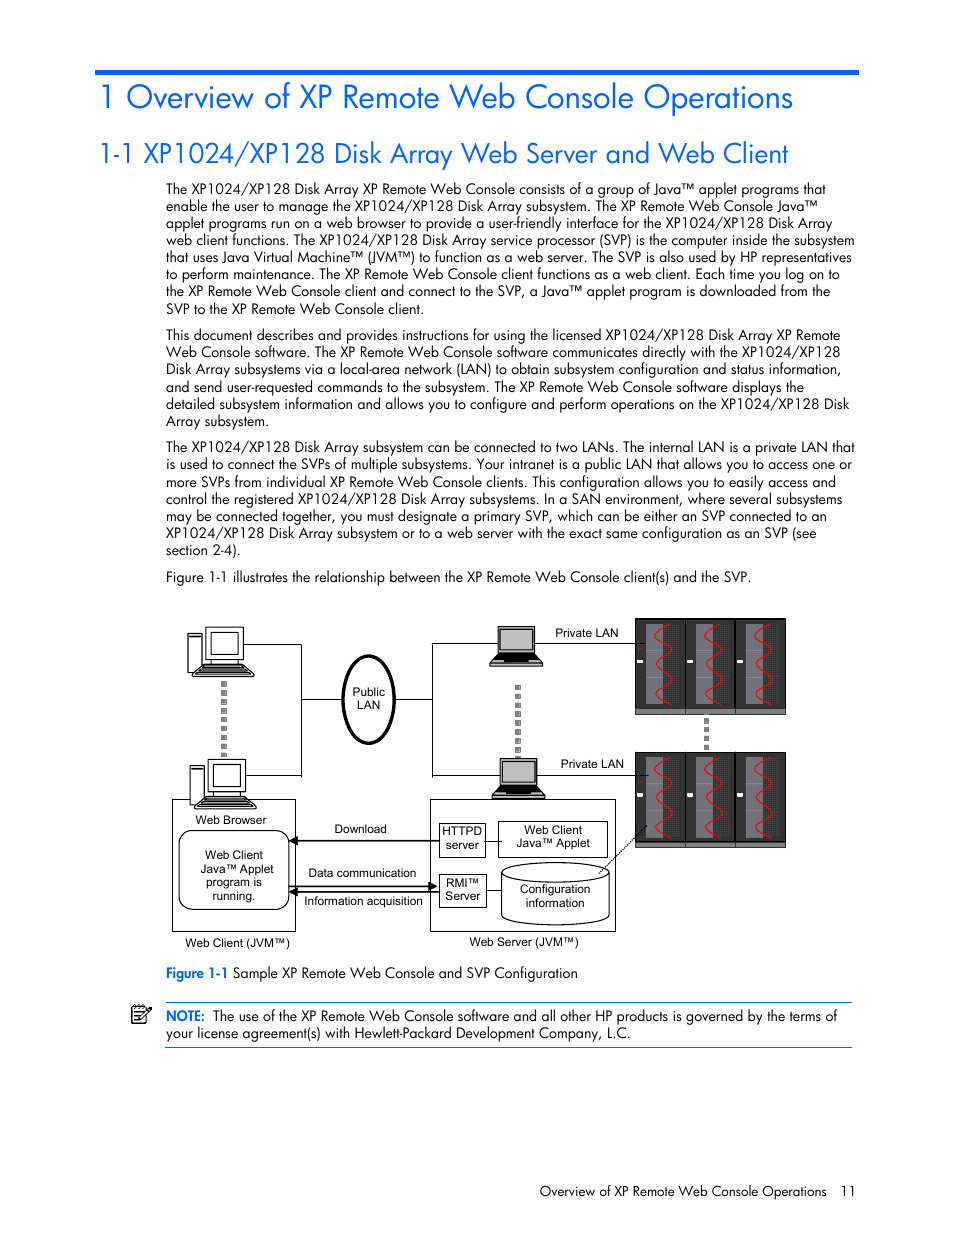 1 overview of xp remote web console operations | HP StorageWorks XP Remote  Web Console Software User Manual | Page 11 / 100